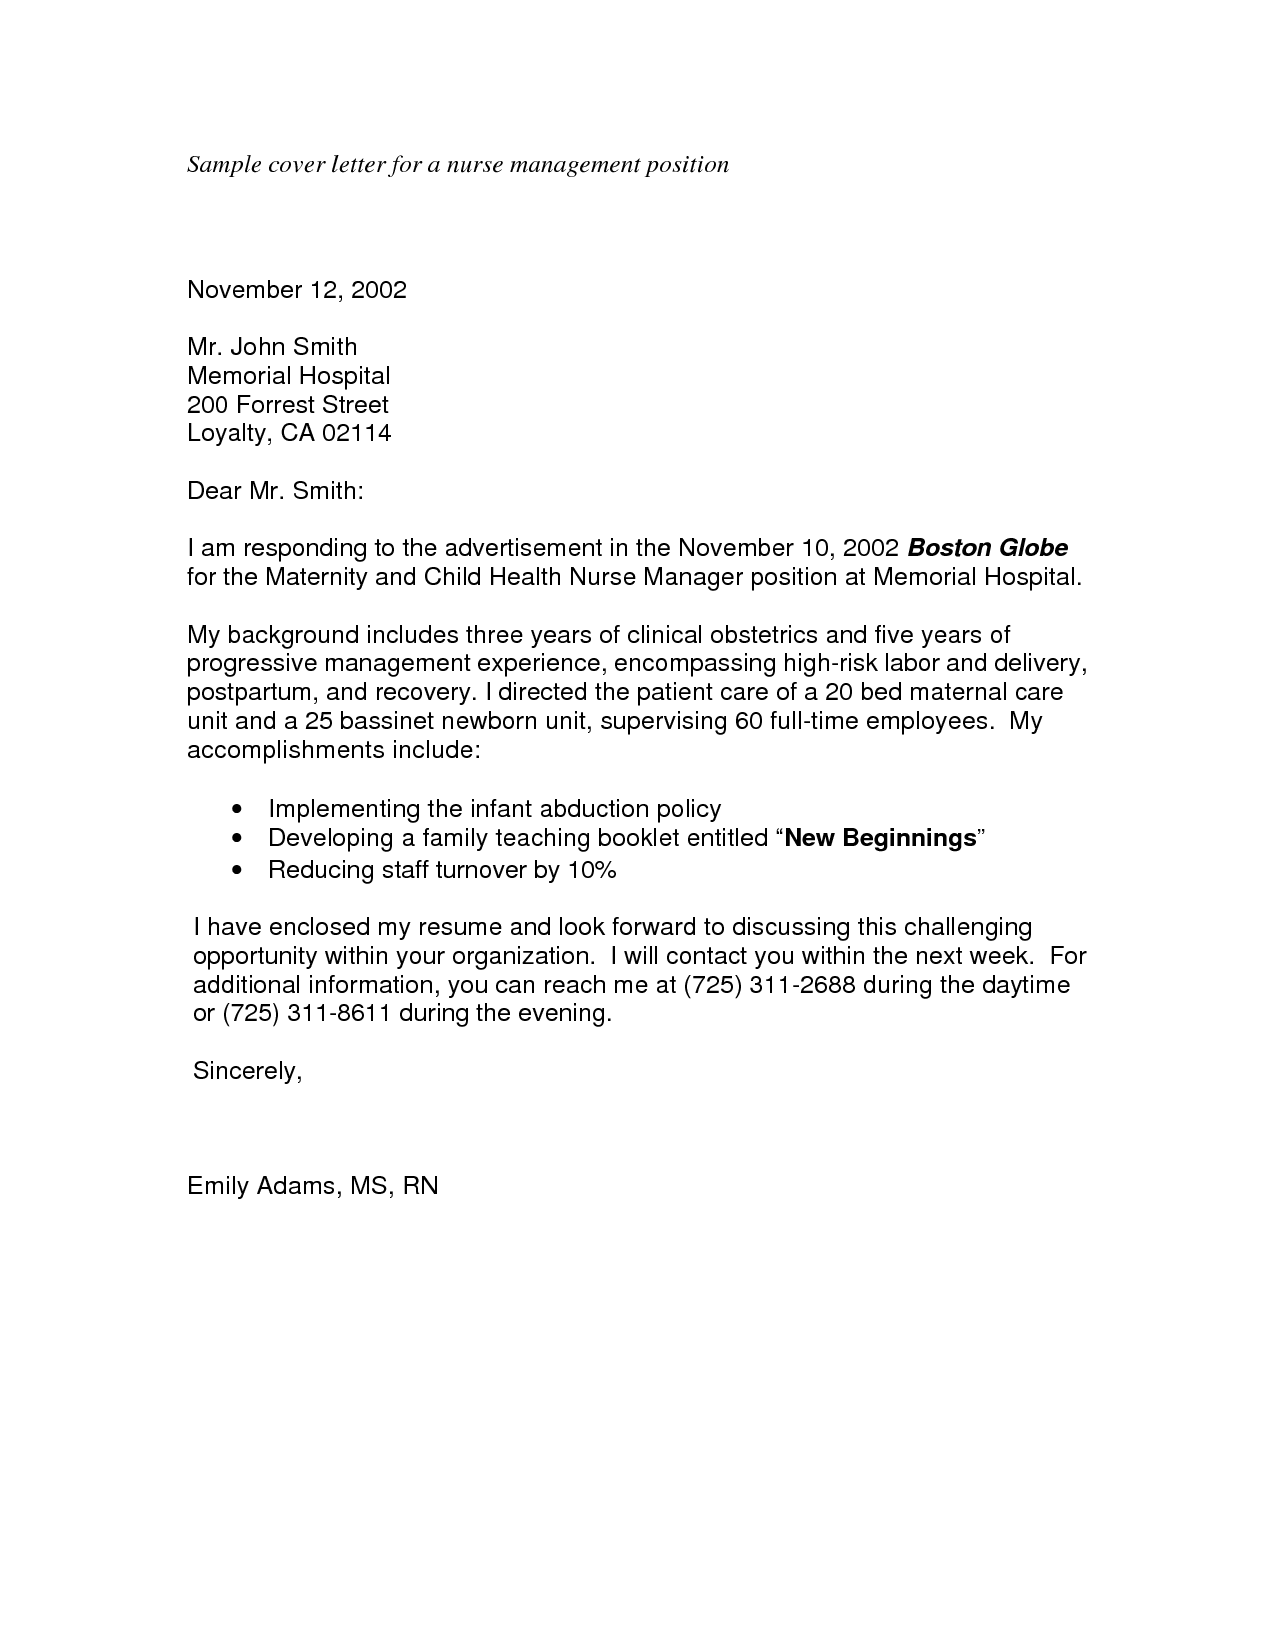 Job Application Letter Sample For Nurses Nursing Cover Letter